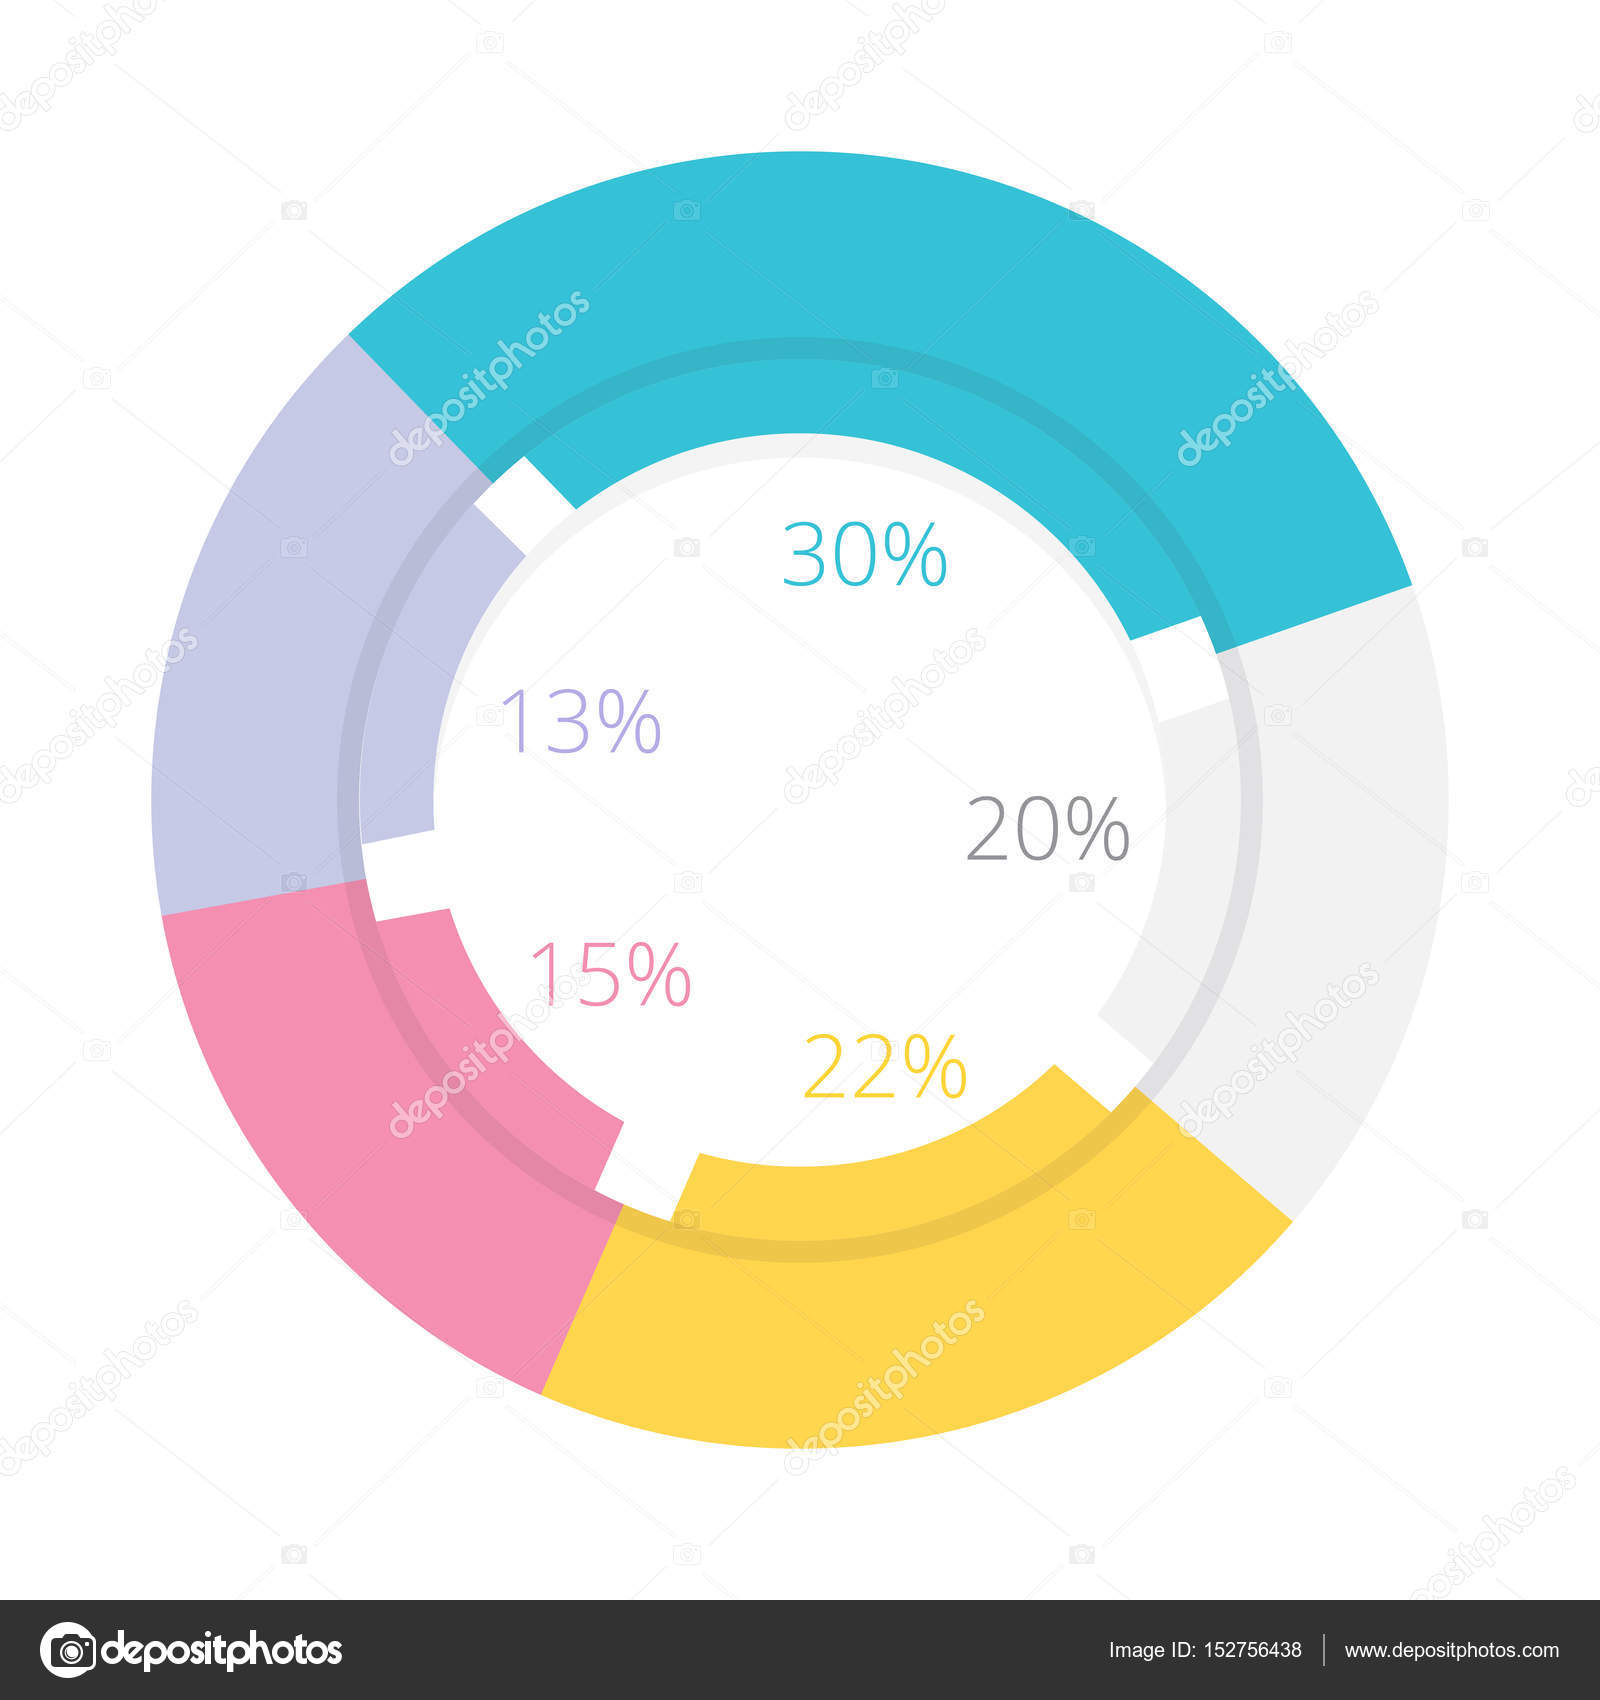 Diagram chart pie doughnut stock vector graphiqa 152756438 diagram chart pie doughnut stock vector nvjuhfo Images